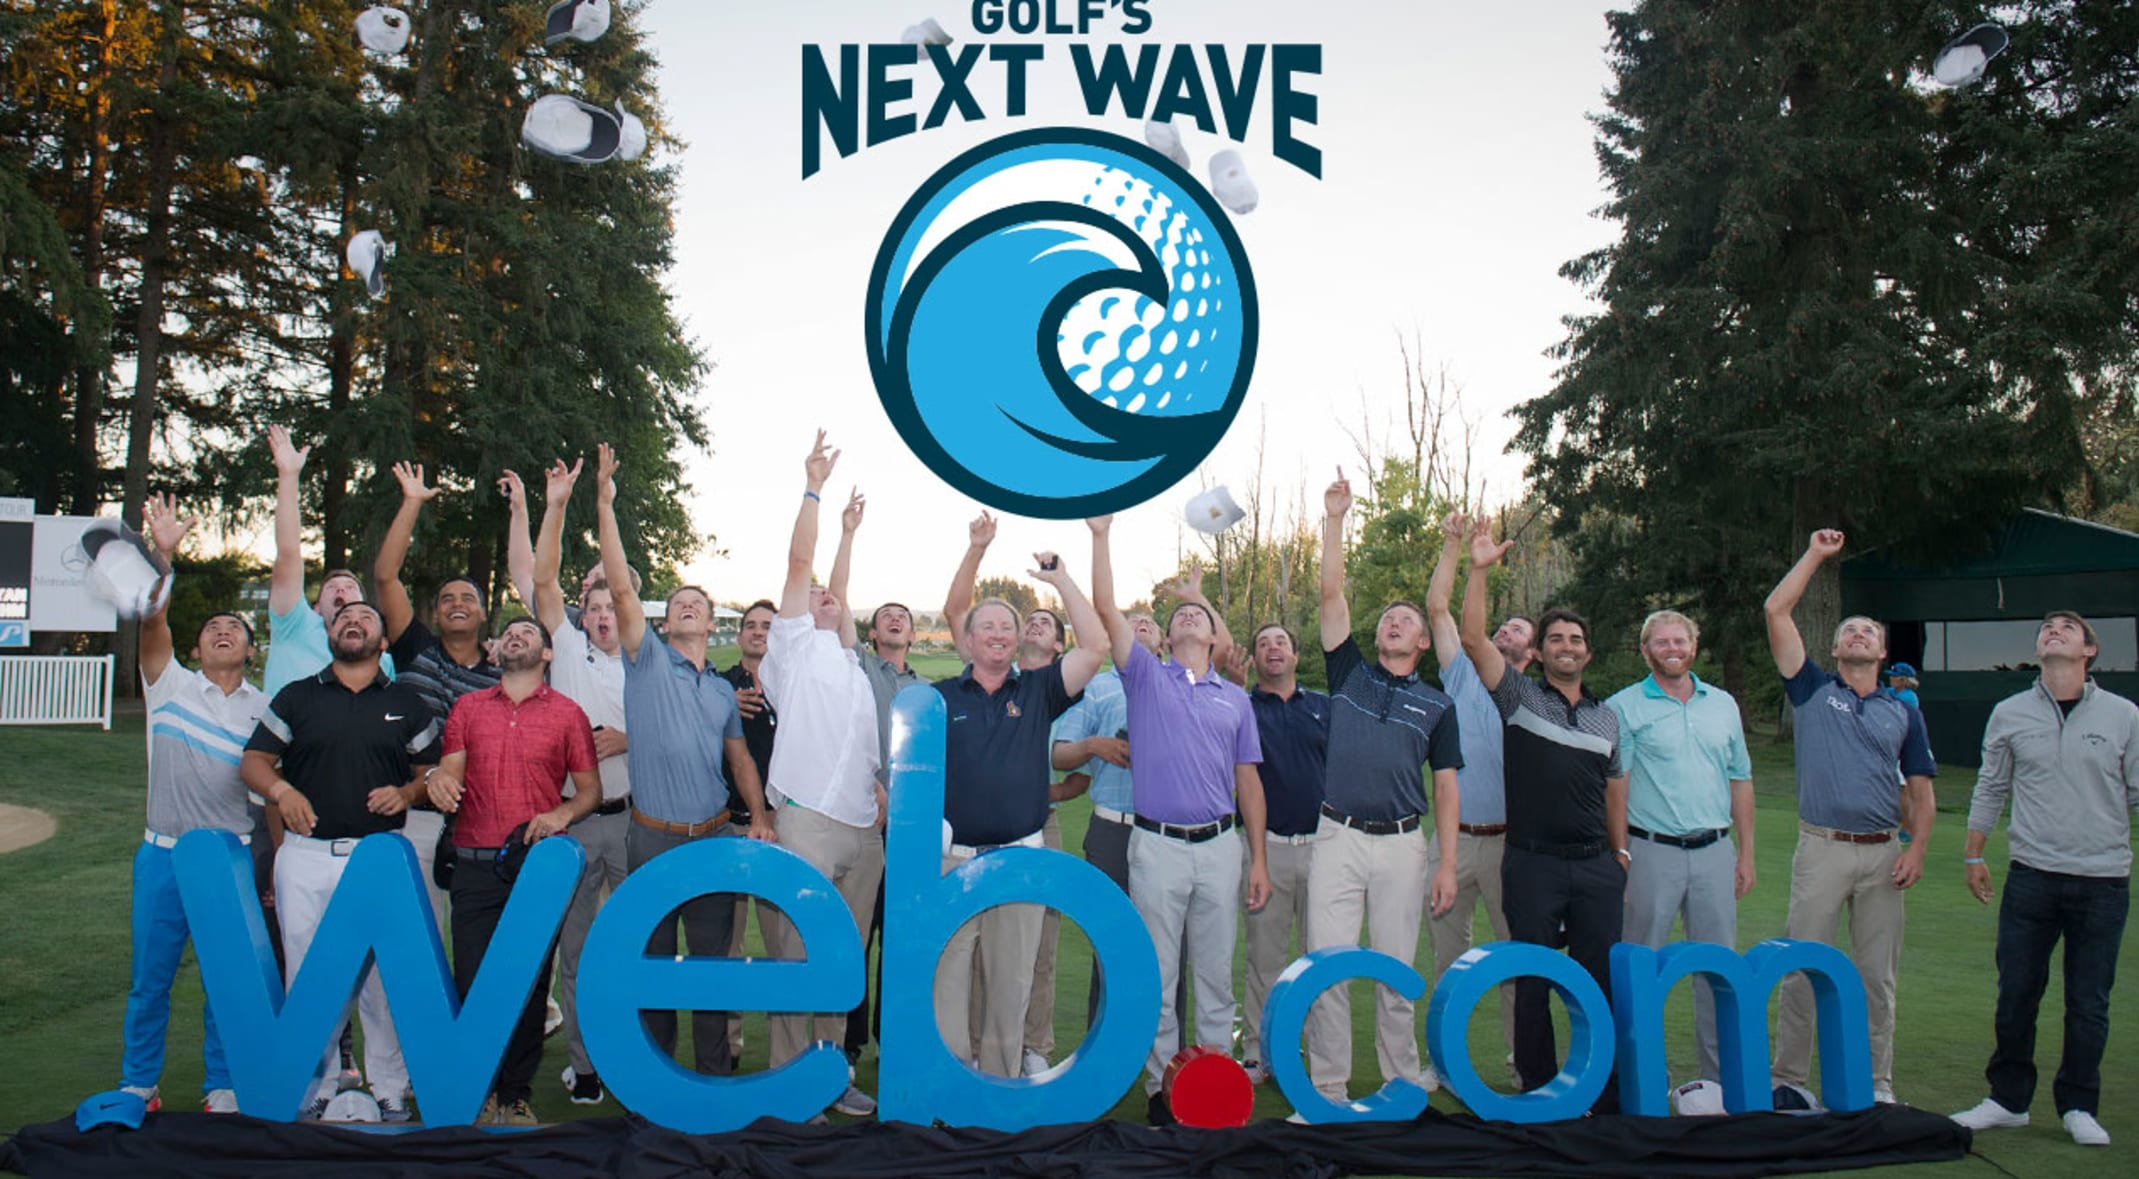 golf's next wave goes behind-the-scenes on web tour